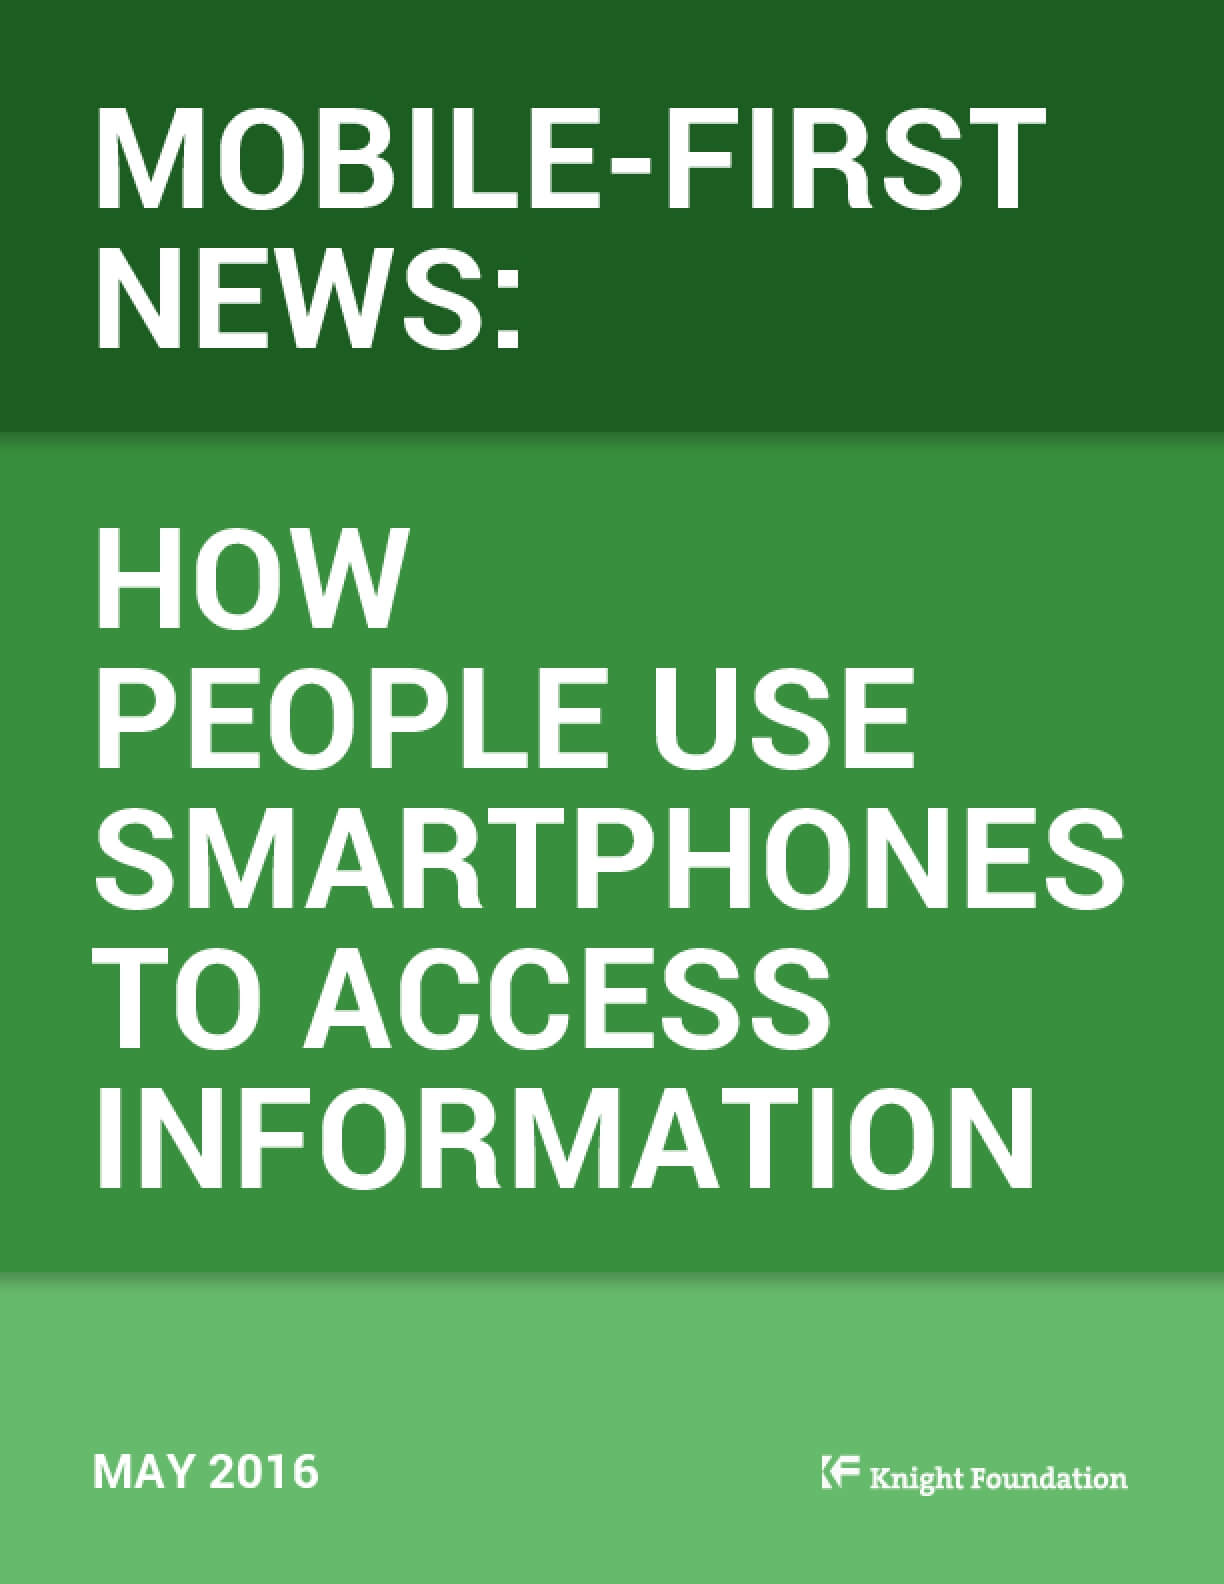 Mobile - First News: How People Use Smartphones to Access Information